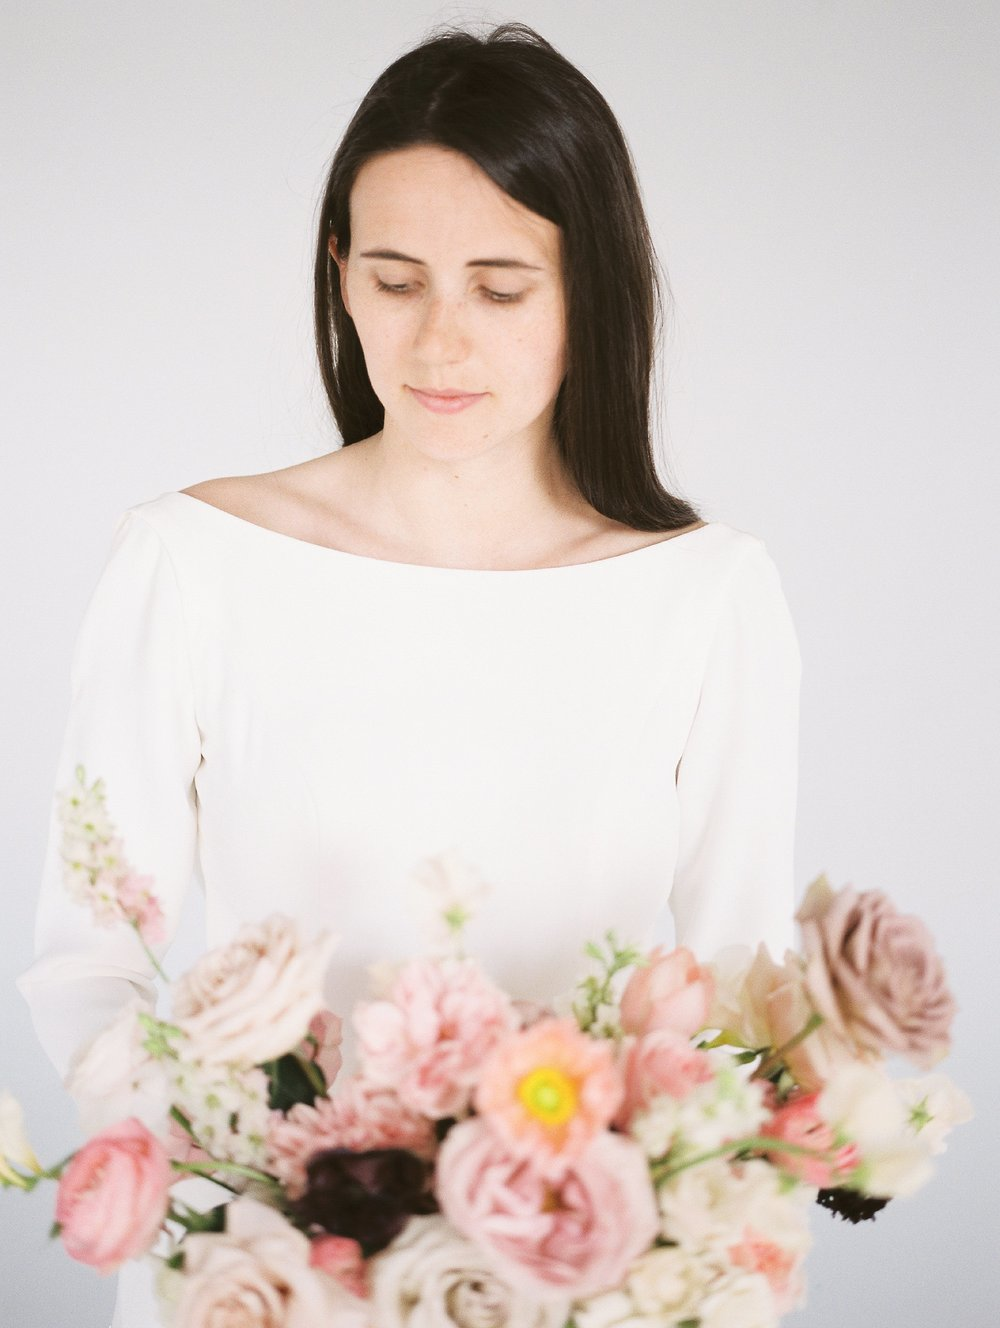 Academy Florist Styled Shoot | Bridal Portraits with bouquet | photographed by Film photographer Keila Marie Photography